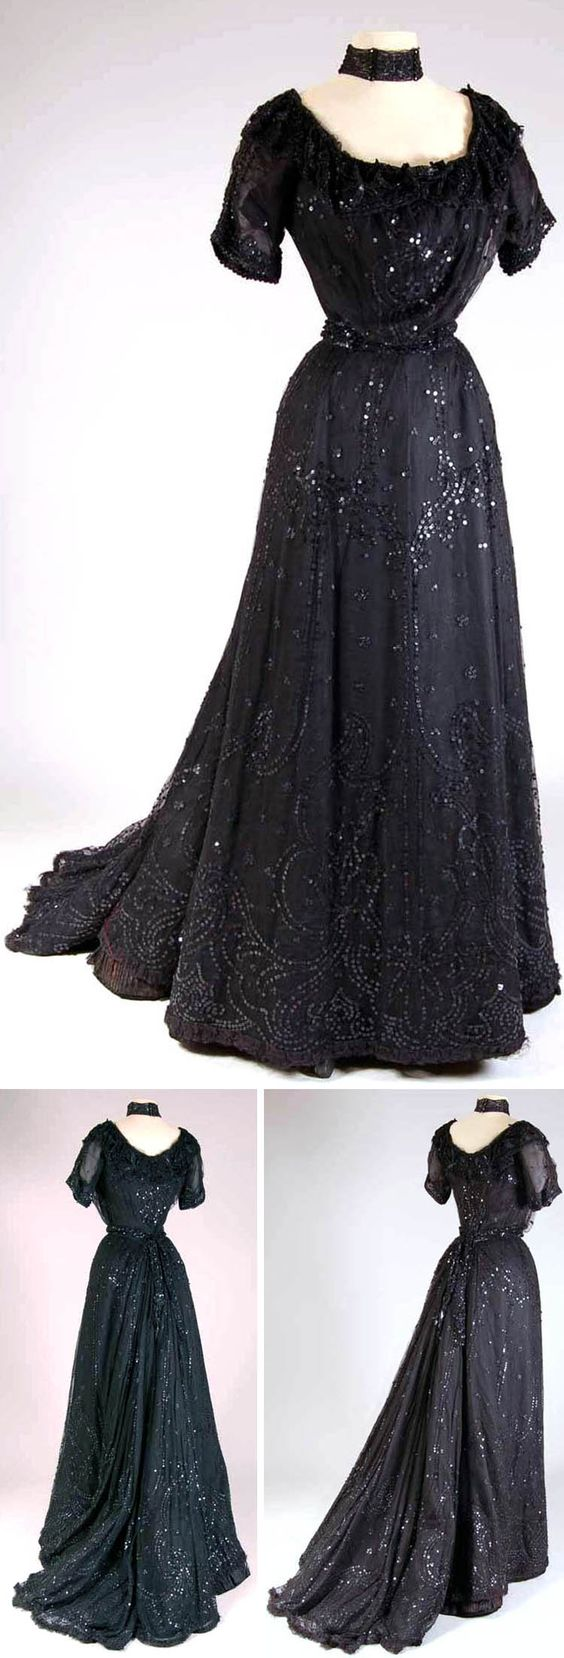 Dress ca. 1900-05. Silk satin, tulle, beads, sequins, chenille. Three pieces: bodice, skirt, belt. Bodice lined in brown cotton, skirt lined in black wool. Dress is poorly put together; it was probably made quickly for an event, with tulle sewn onto an old satin gown. Mode Museum, Antwerp